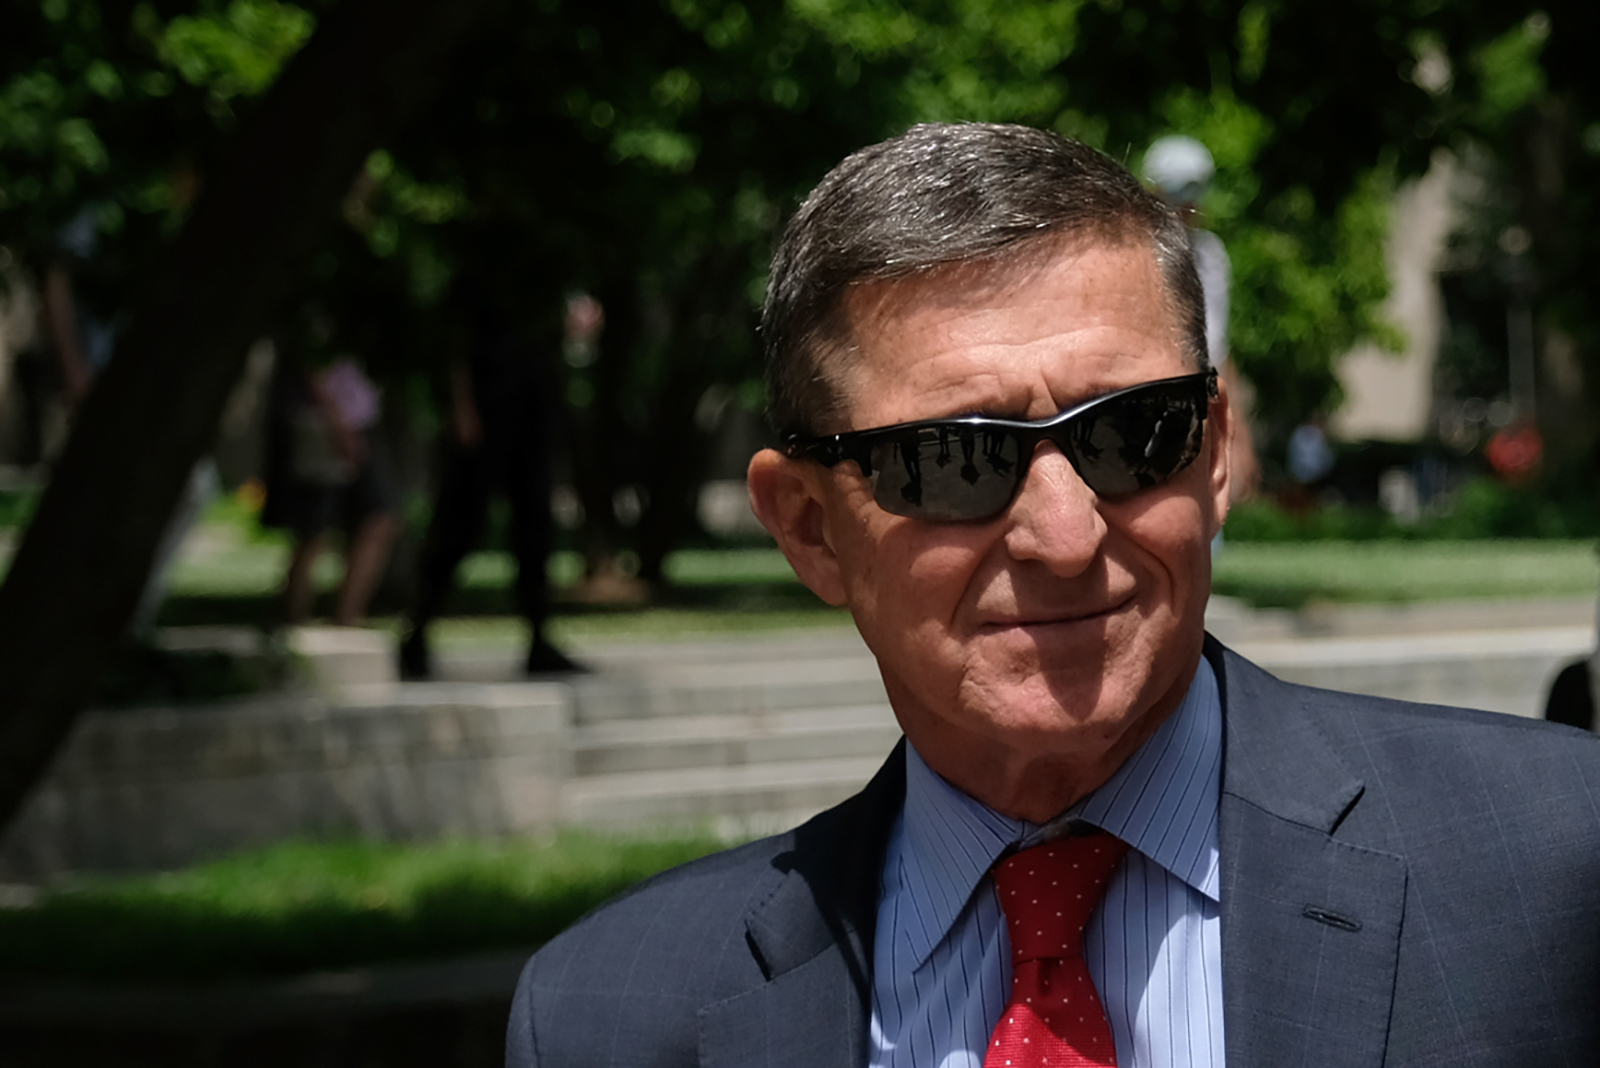 Appeals court rehearing request to dismiss Michael Flynn's case